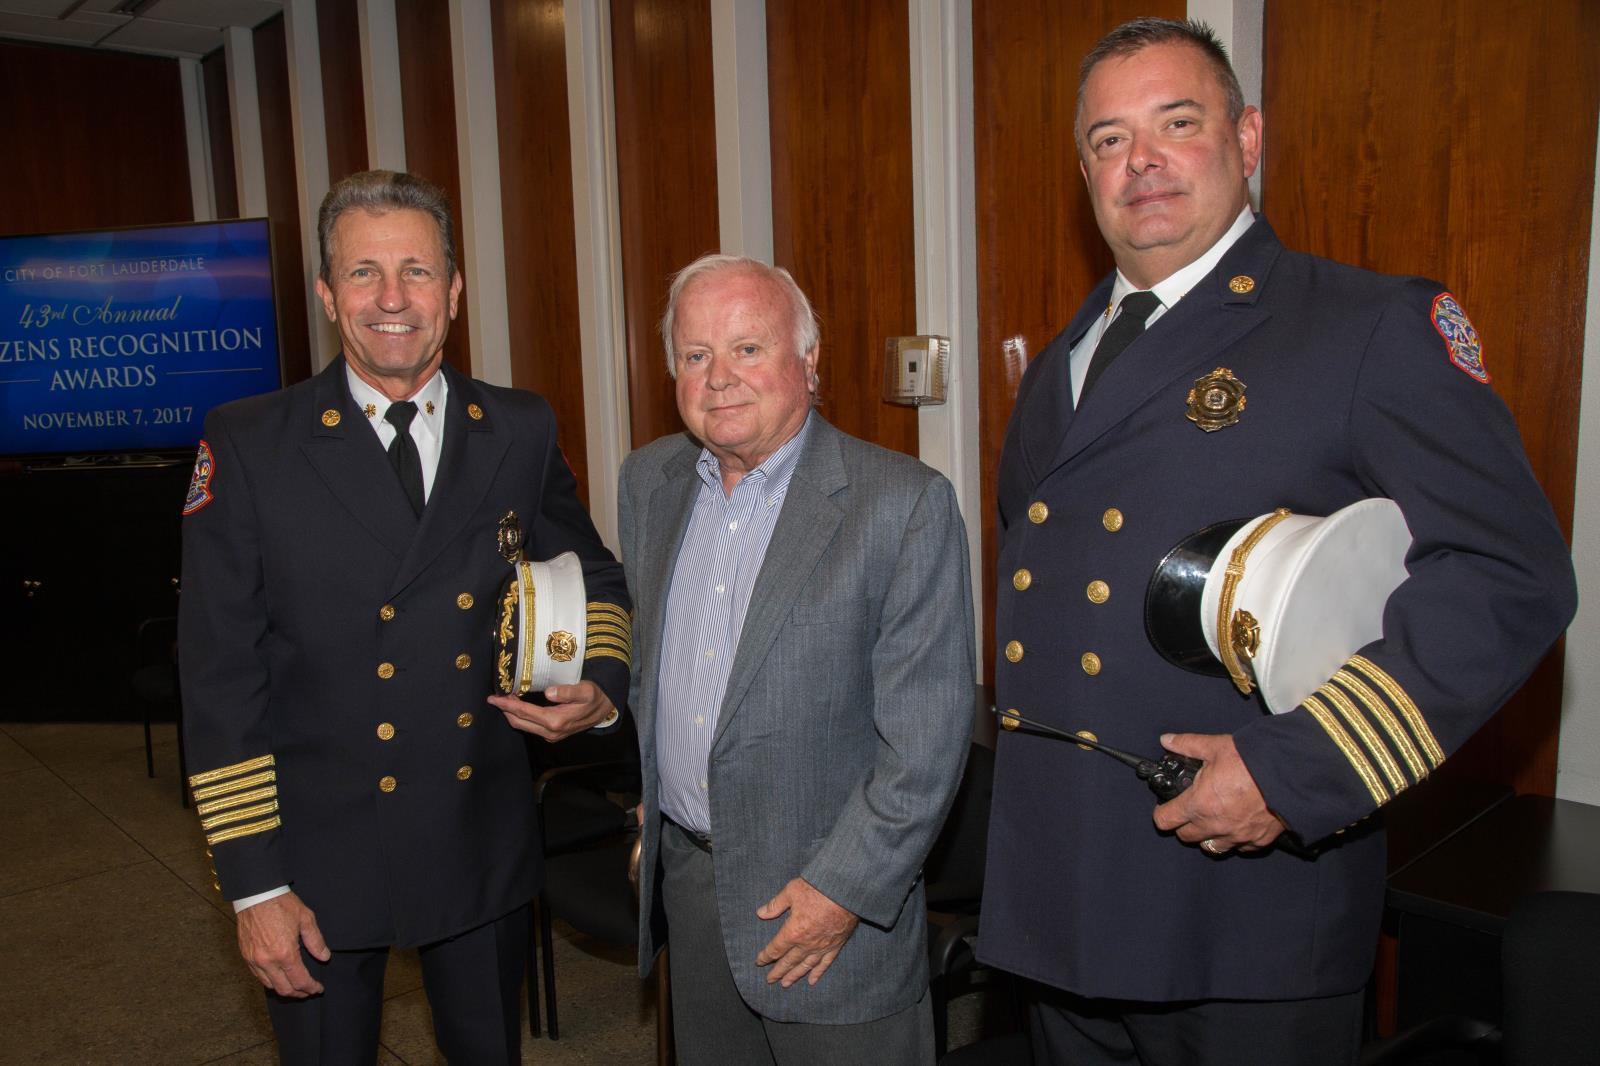 Fire Chief Robert Hoercherl, Former Commissioner John Aurelius, and Deputy Fire Chief Timothy Heiser